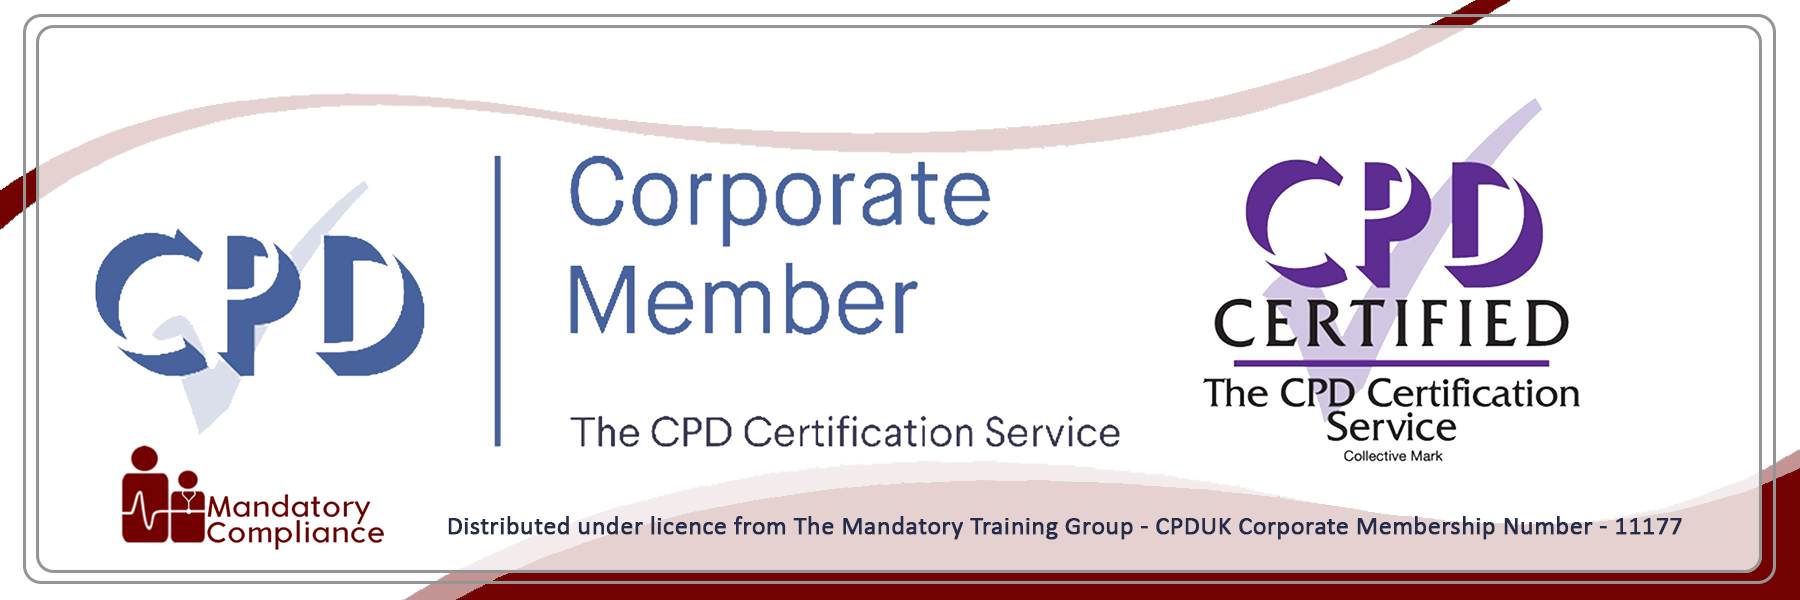 Mandatory Training for Residential Care Home Workers - E-Learning Courses - Mandatory Compliance UK -